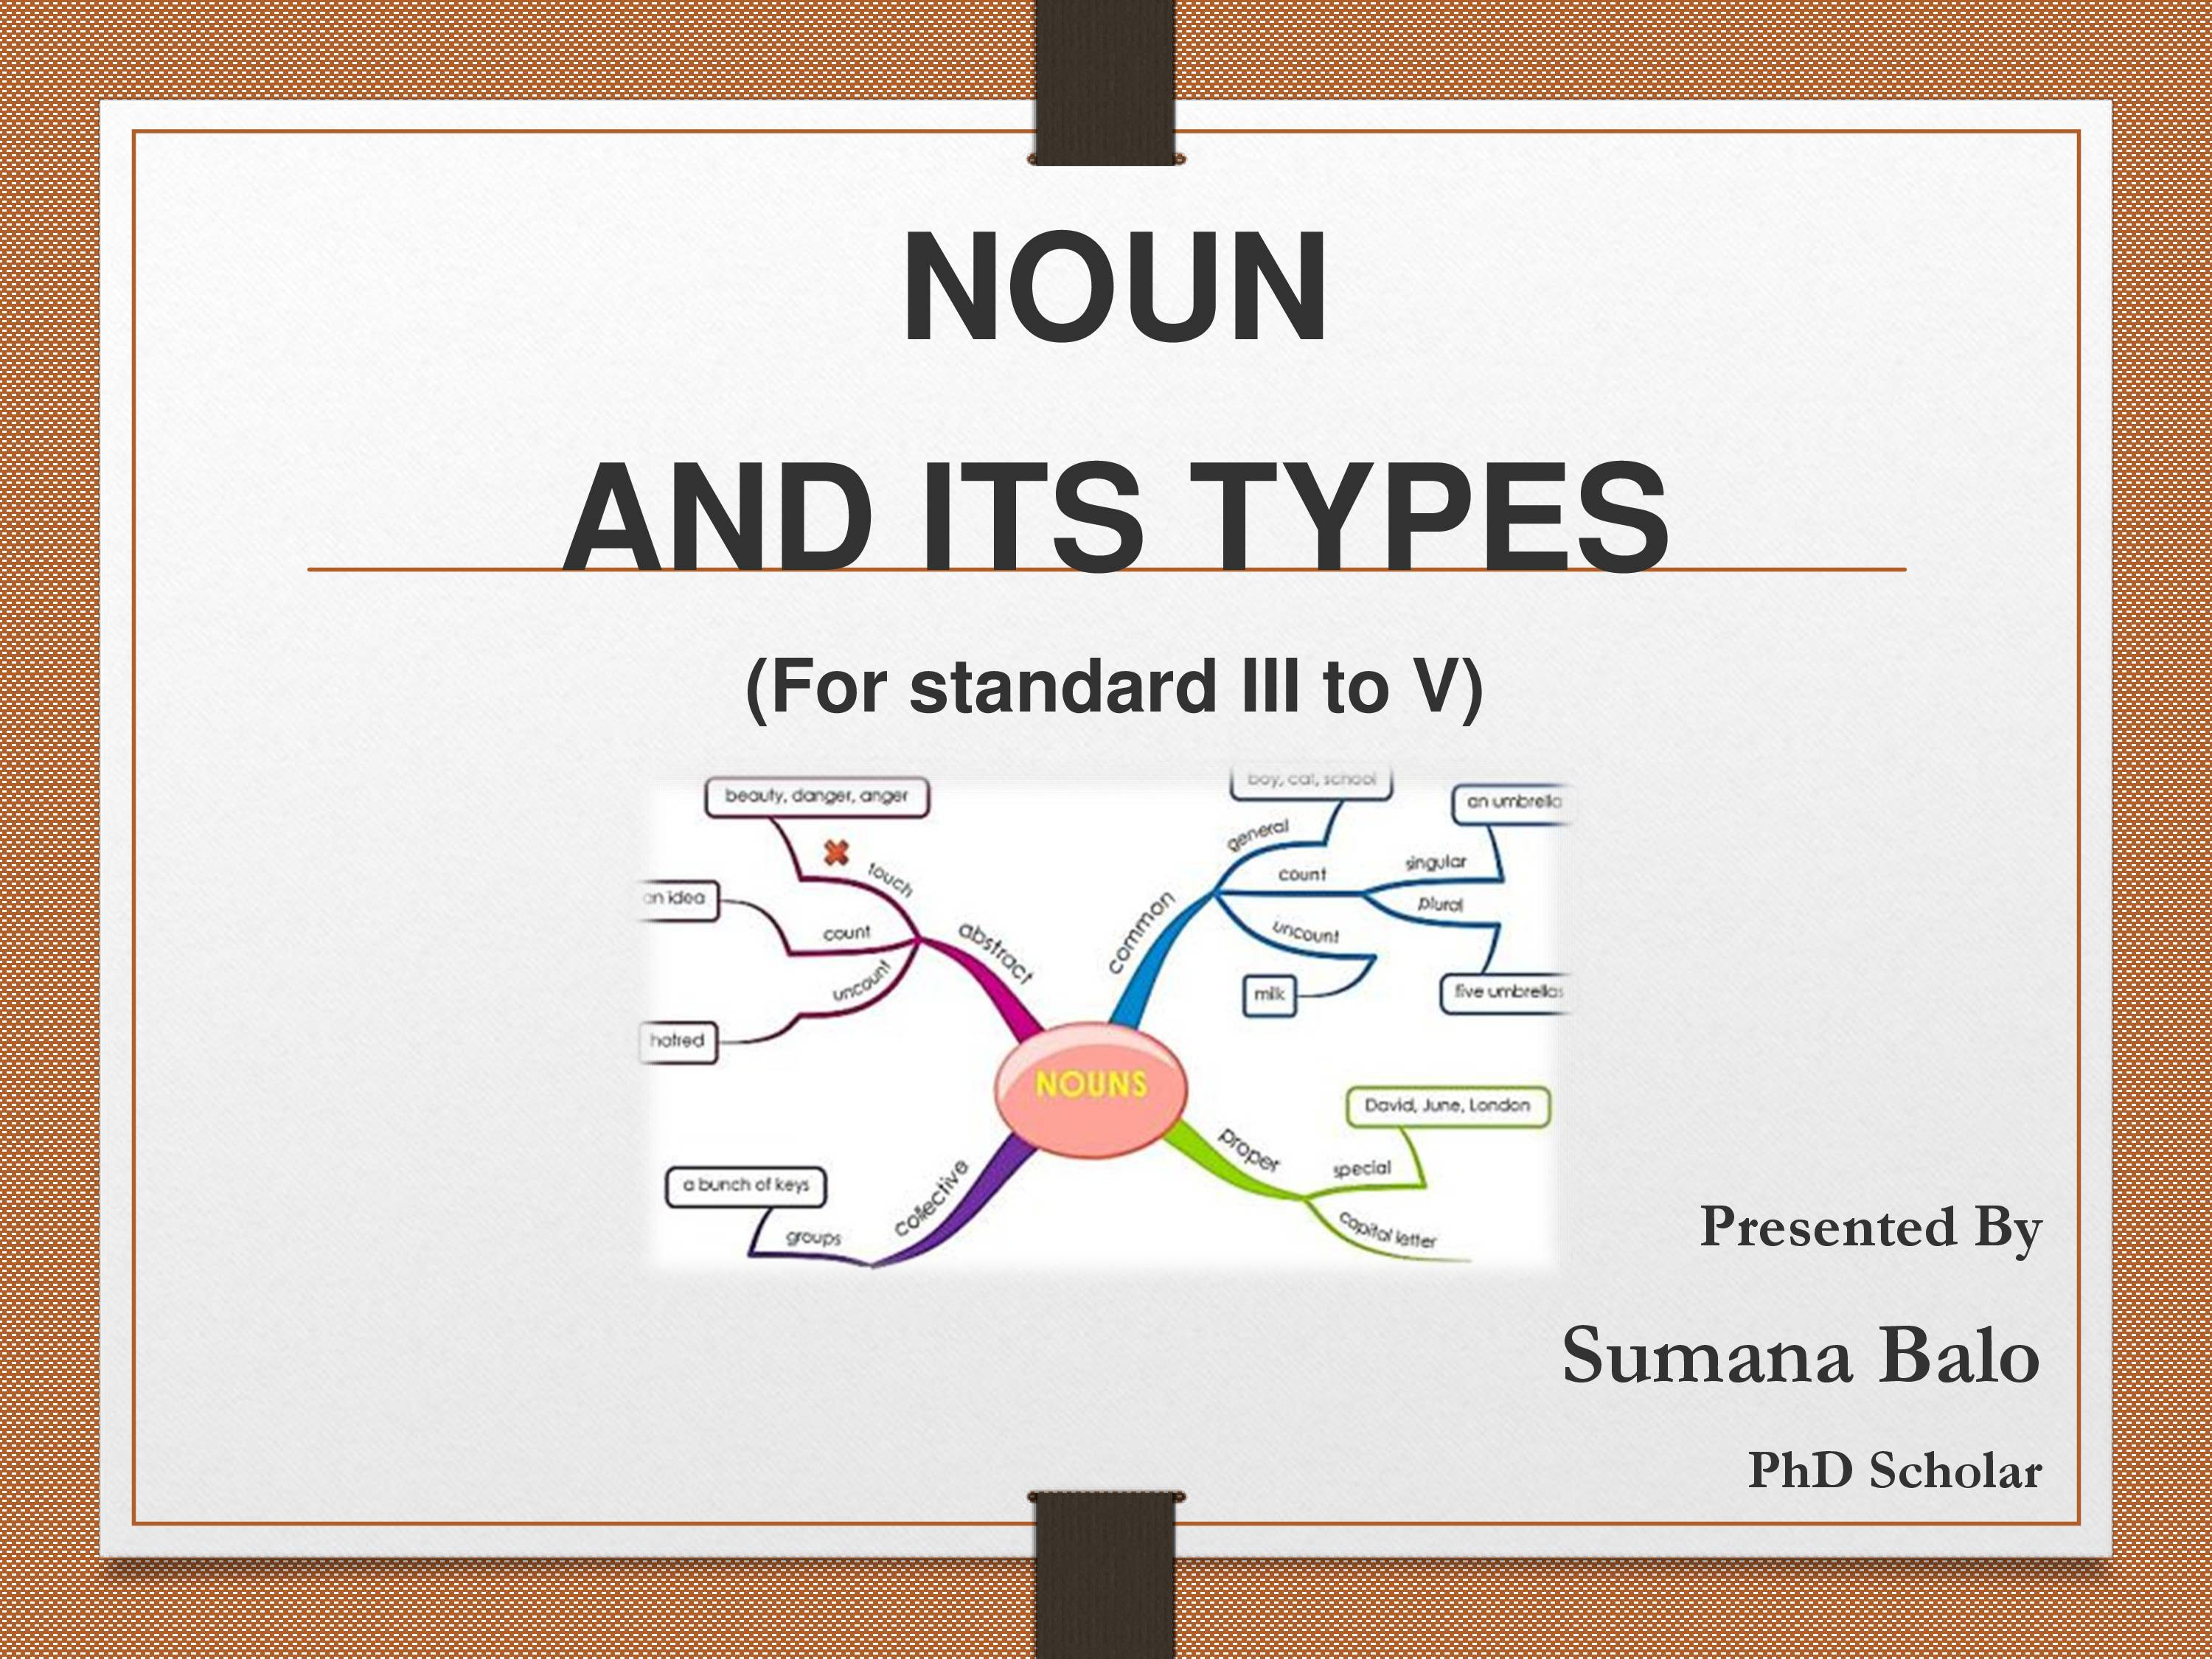 PPT on NOUN AND ITS TYPES